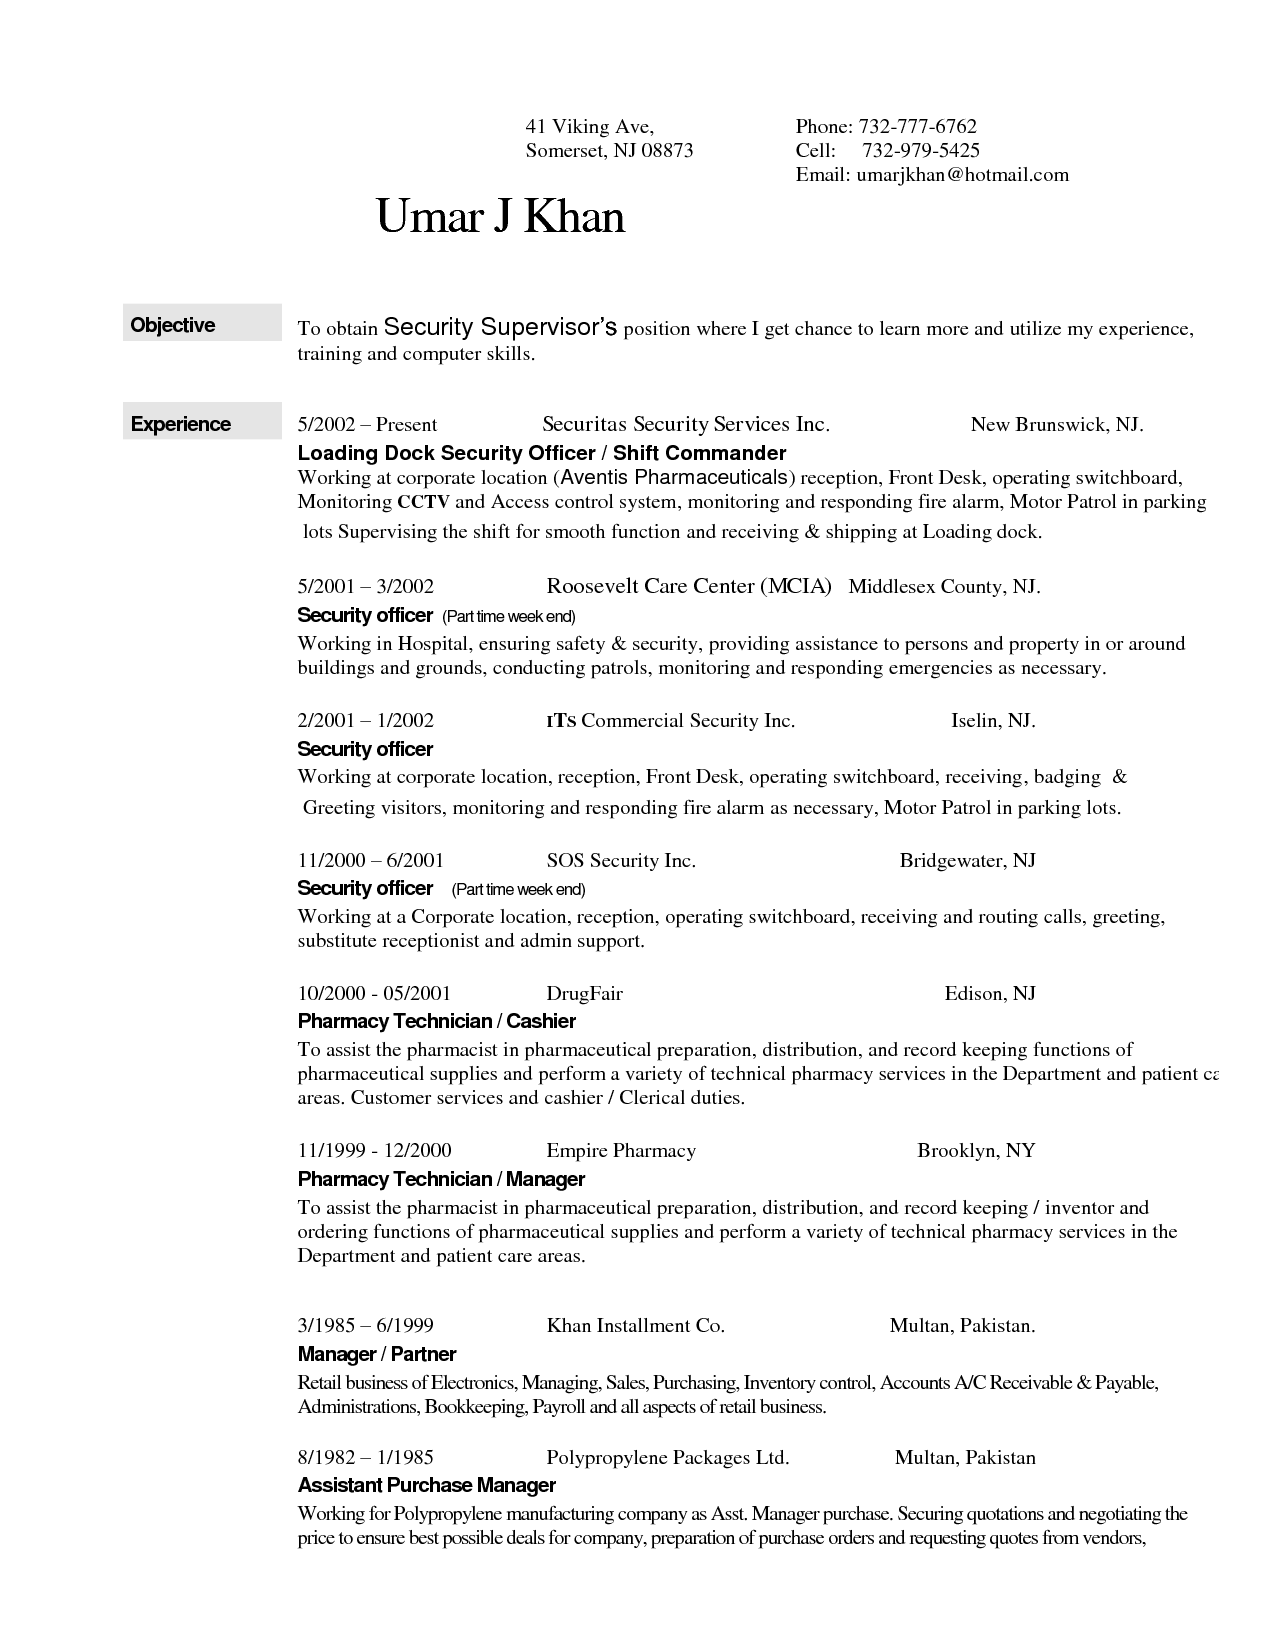 pin by latestresume on latest resume pinterest resume examples